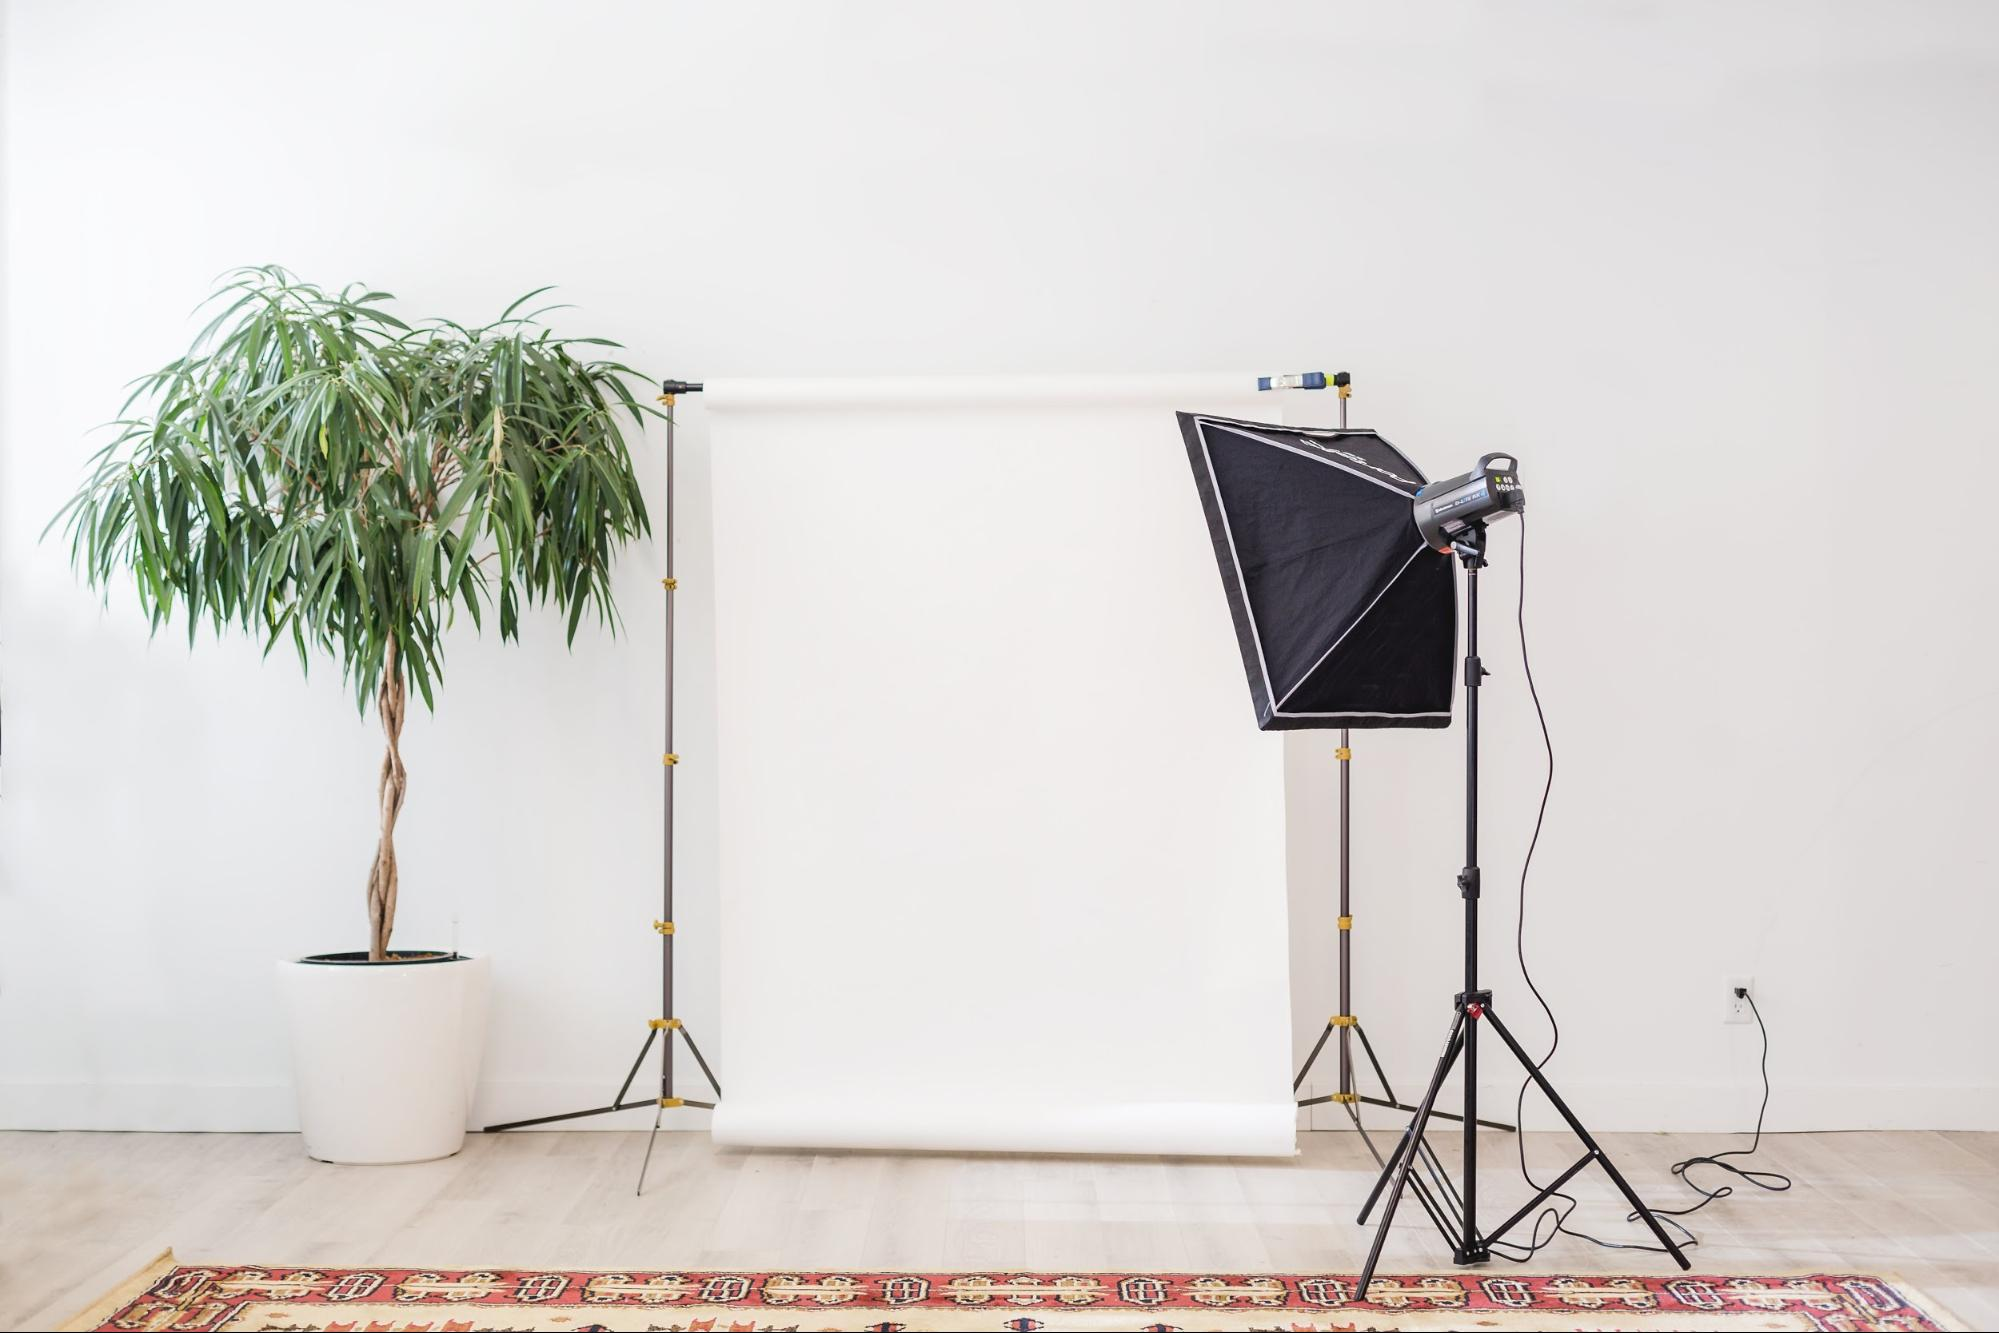 Film lighting equipment pointed to the wall